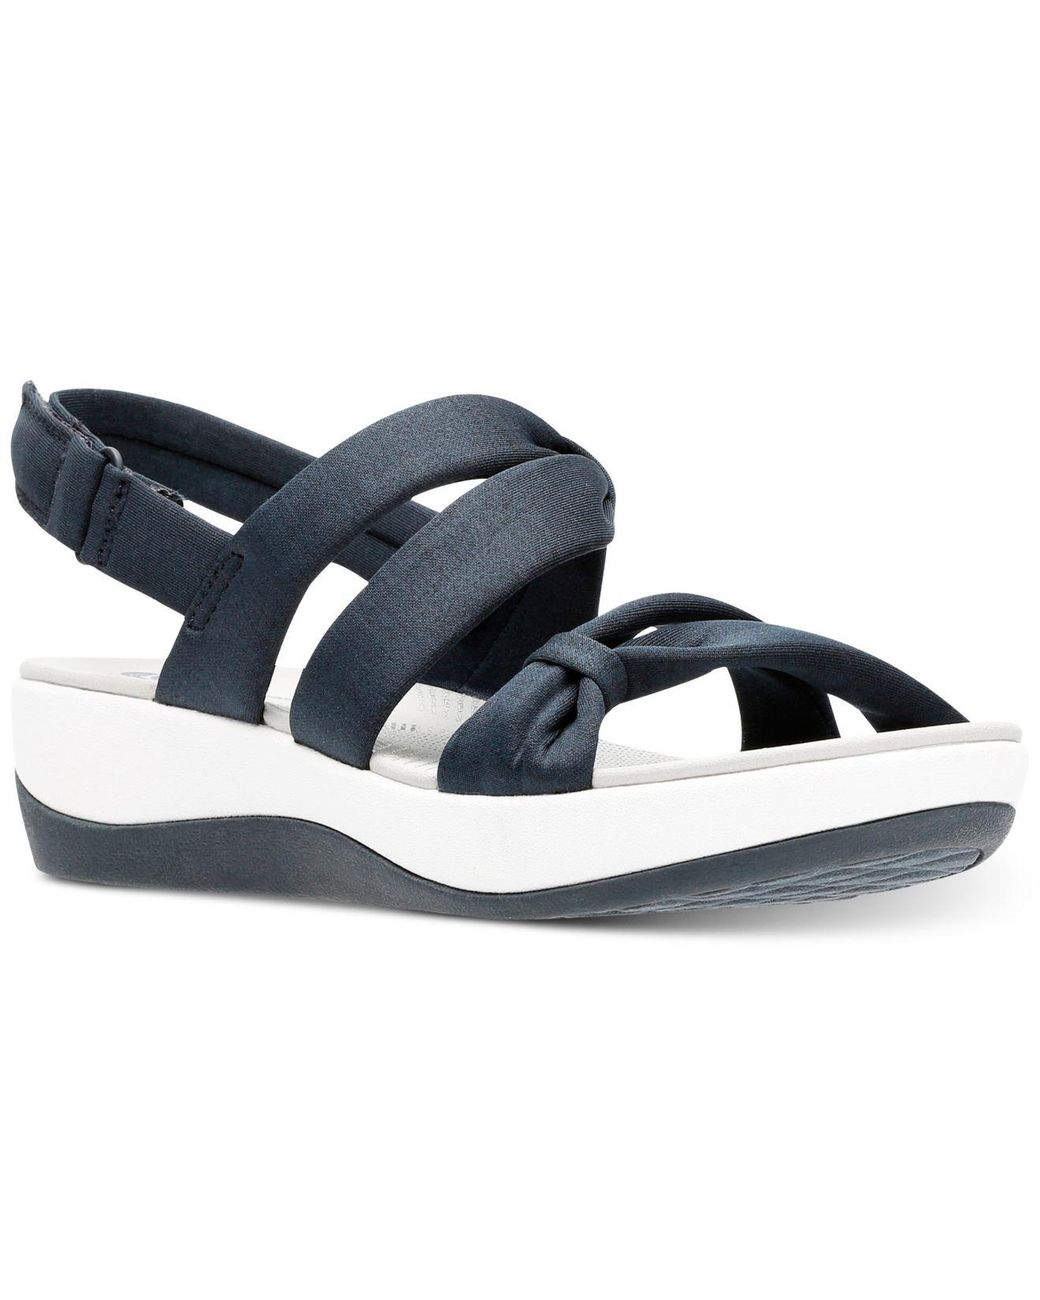 dda6041270c Lyst - Clarks Cloudsteppers Arla Mae Wedge Sandals in Blue